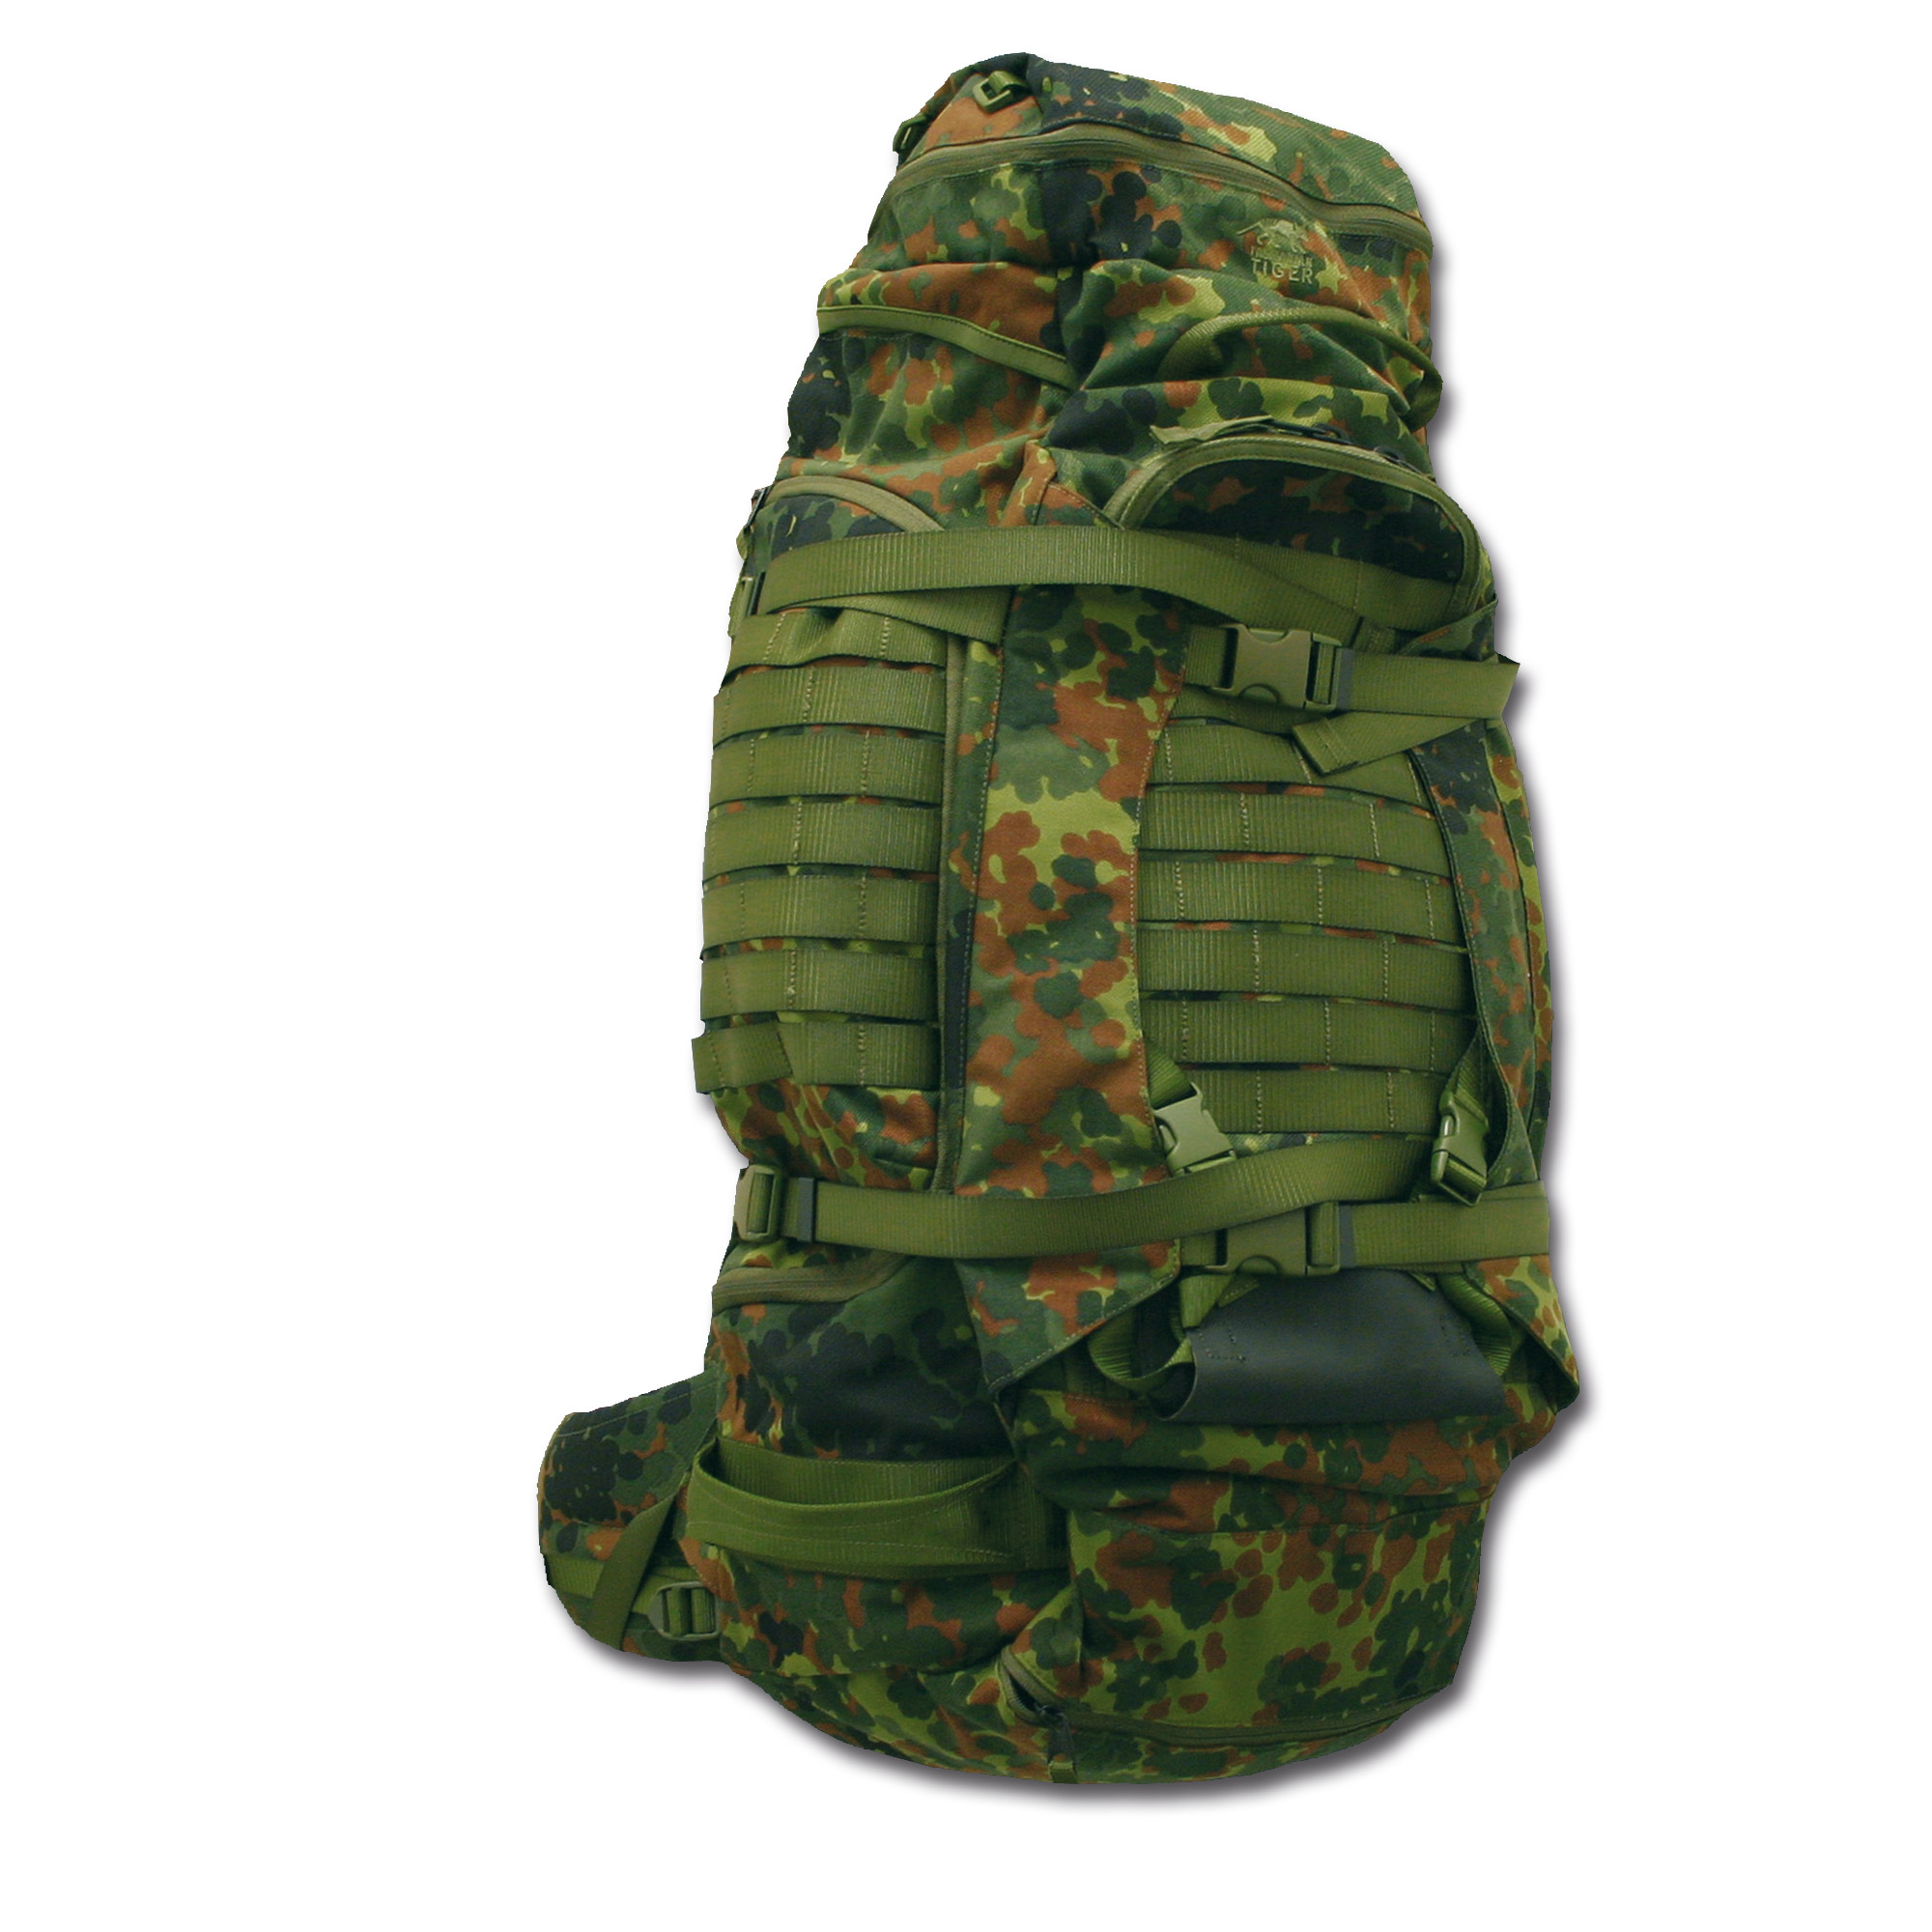 Sac à dos TT Operation Bag flecktarn